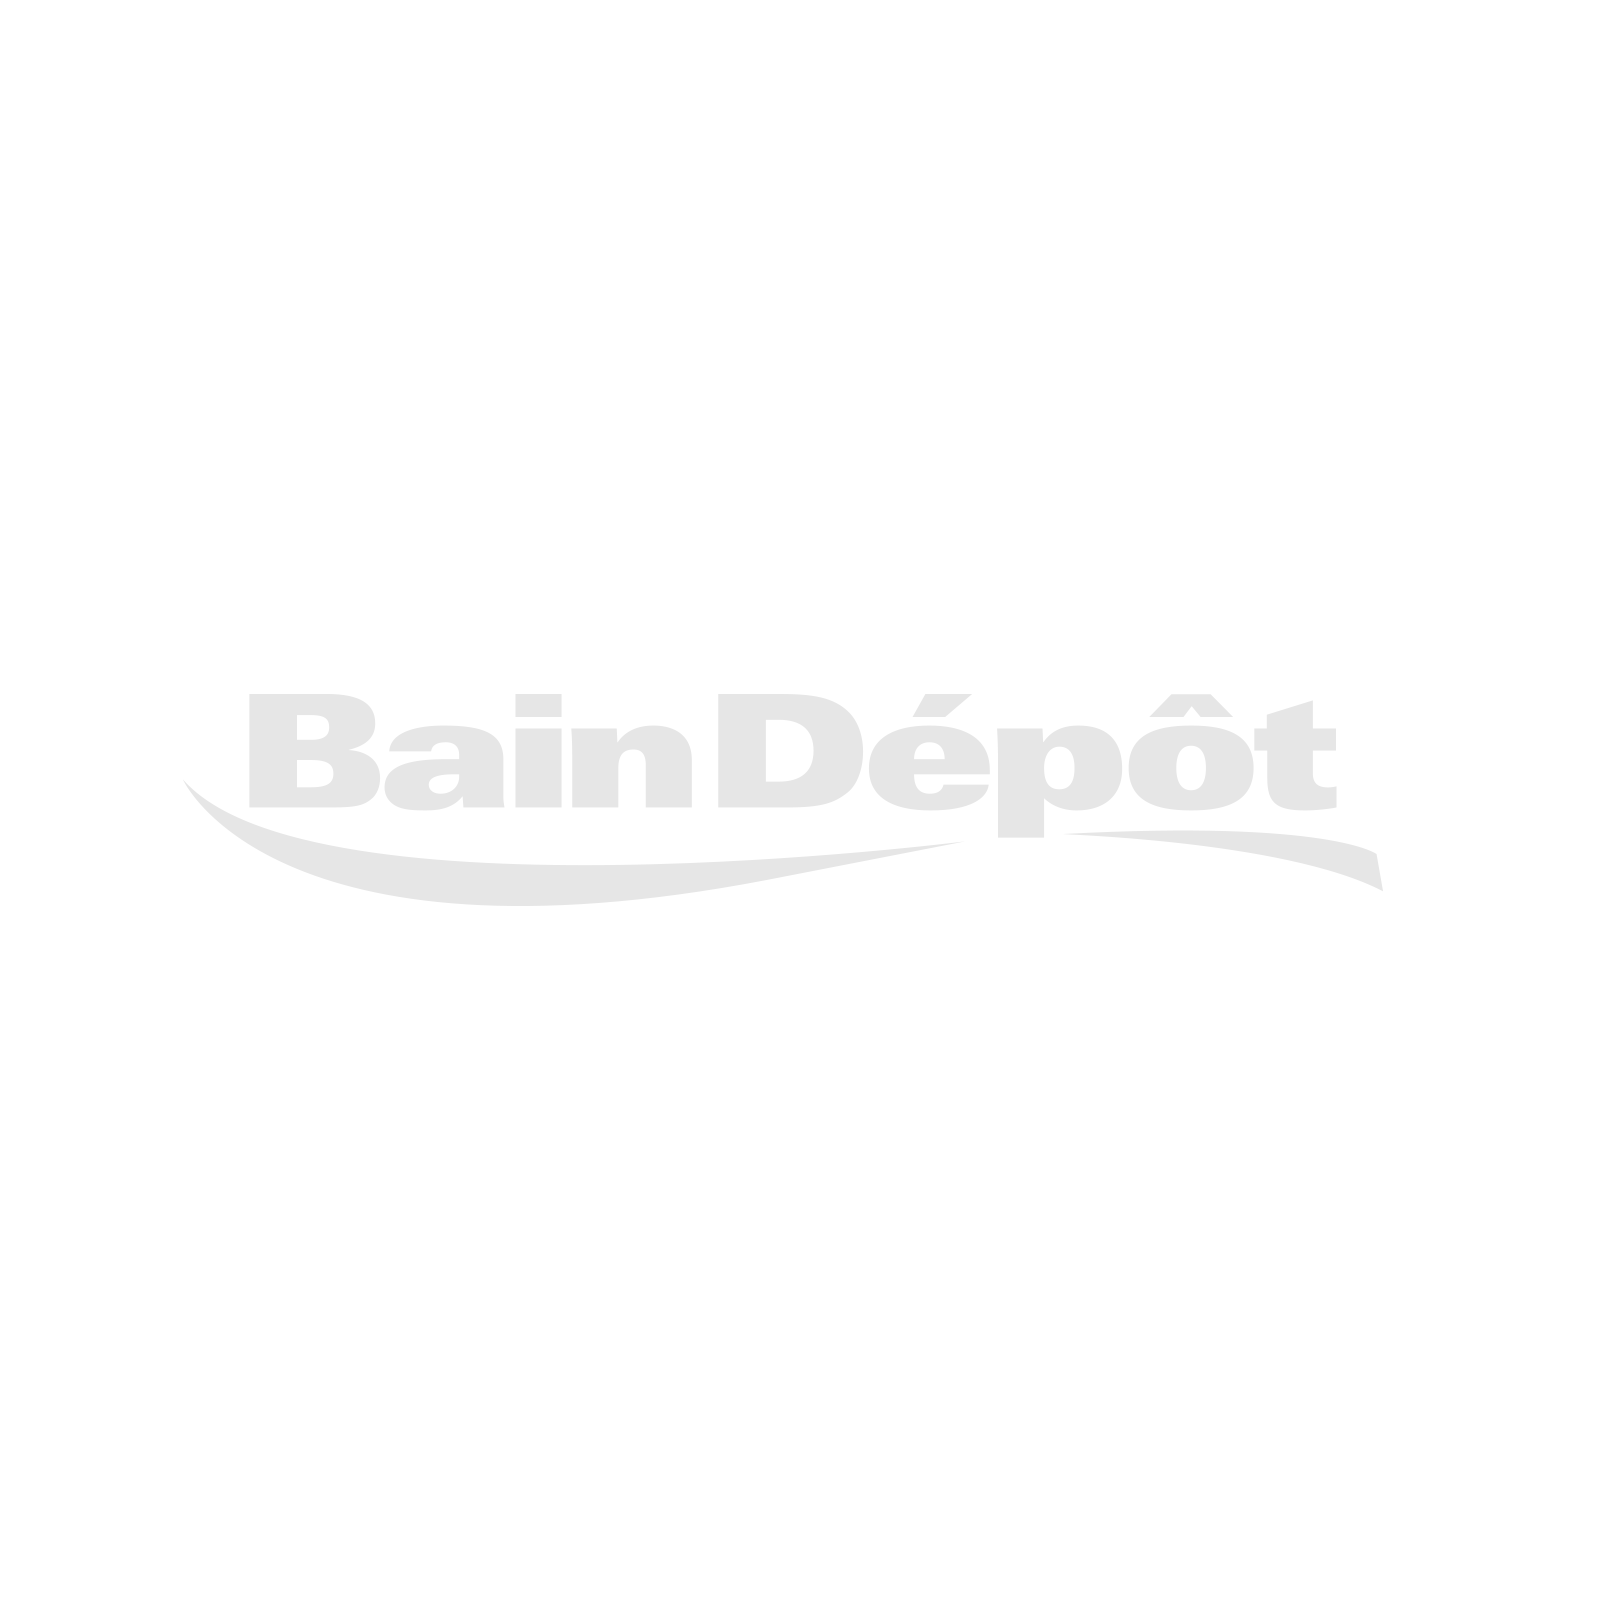 "40"" x 24"" Bathroom mirror with black aluminum frame"